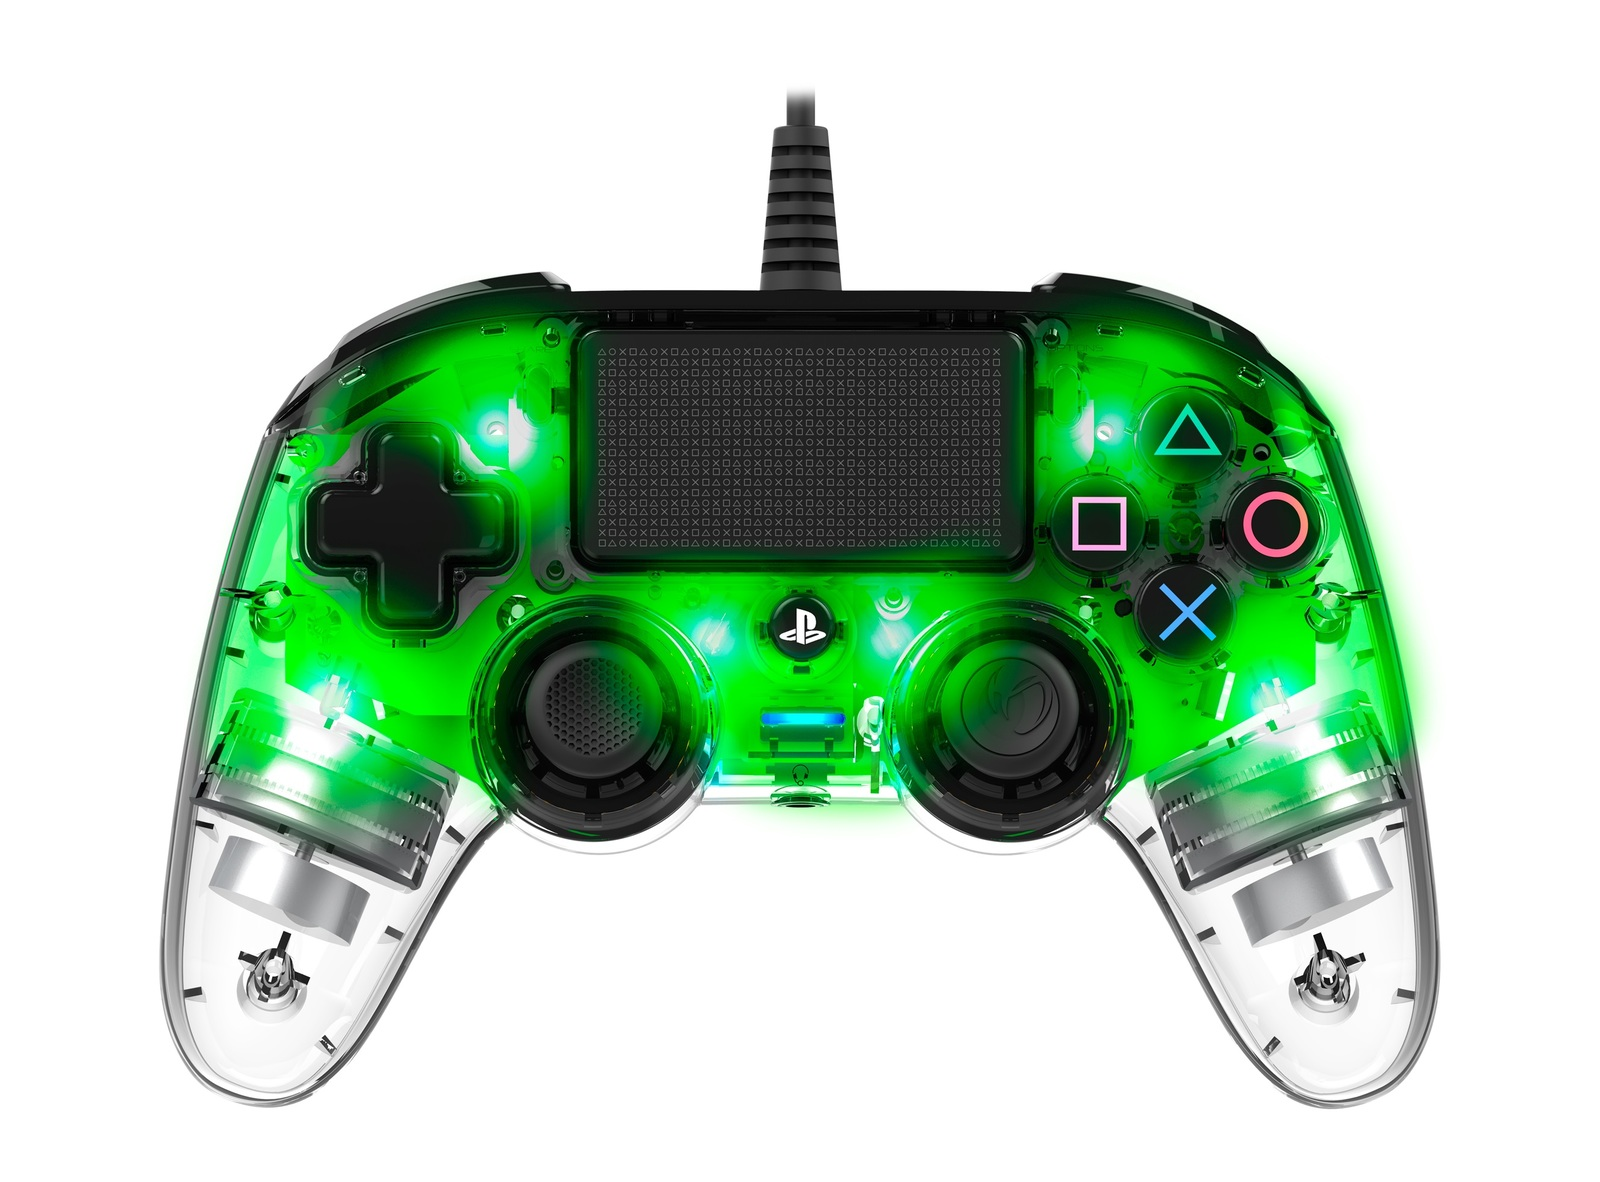 Nacon PS4 Illuminated Wired Gaming Controller - Light Green for PS4 image